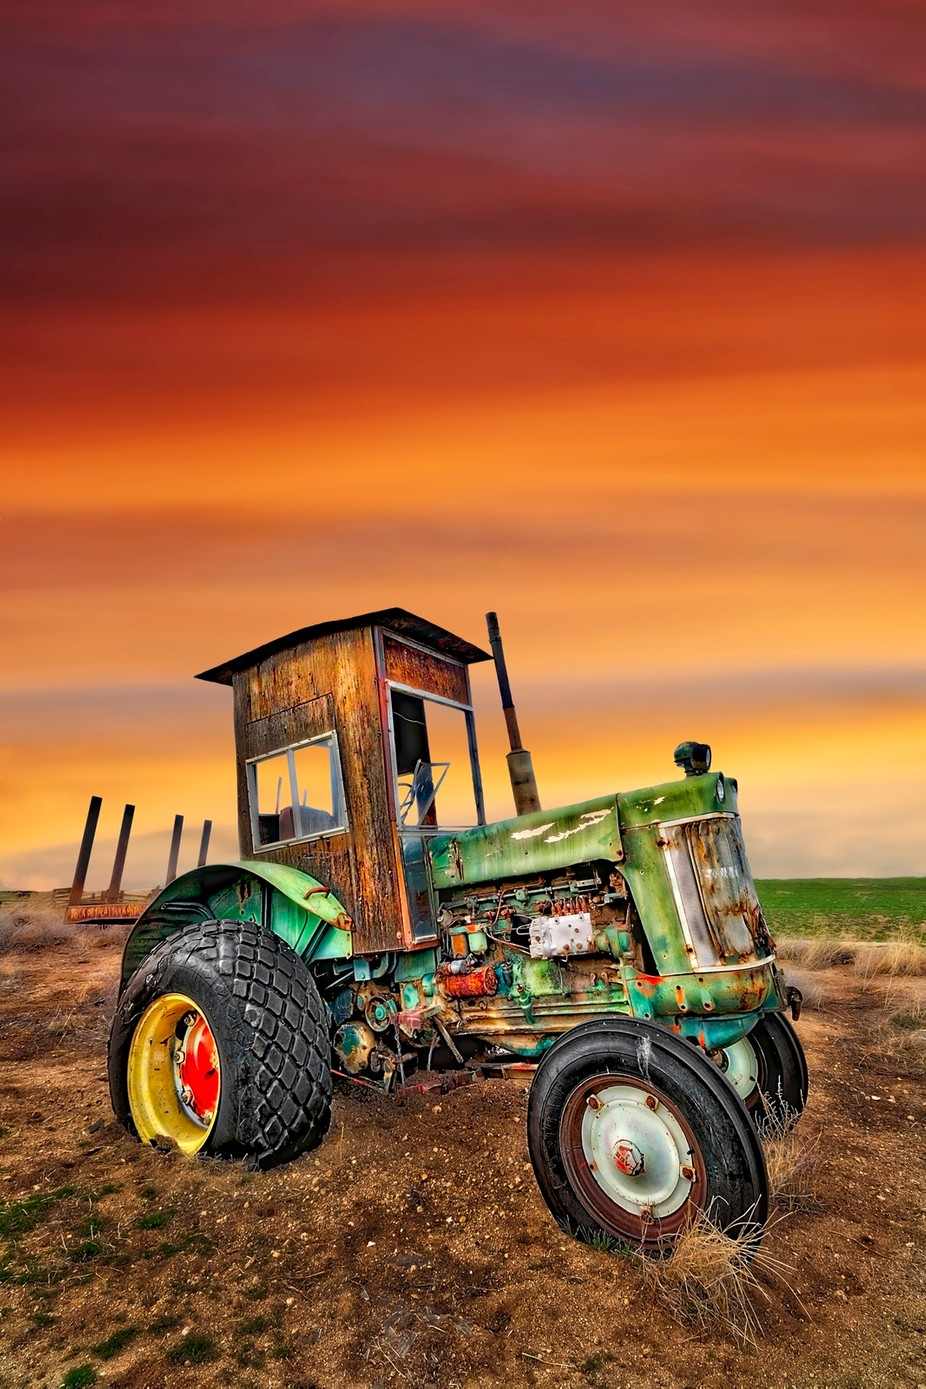 Case 930 with Custom Cab by dynastesgranti - Farms And Barns Photo Contest